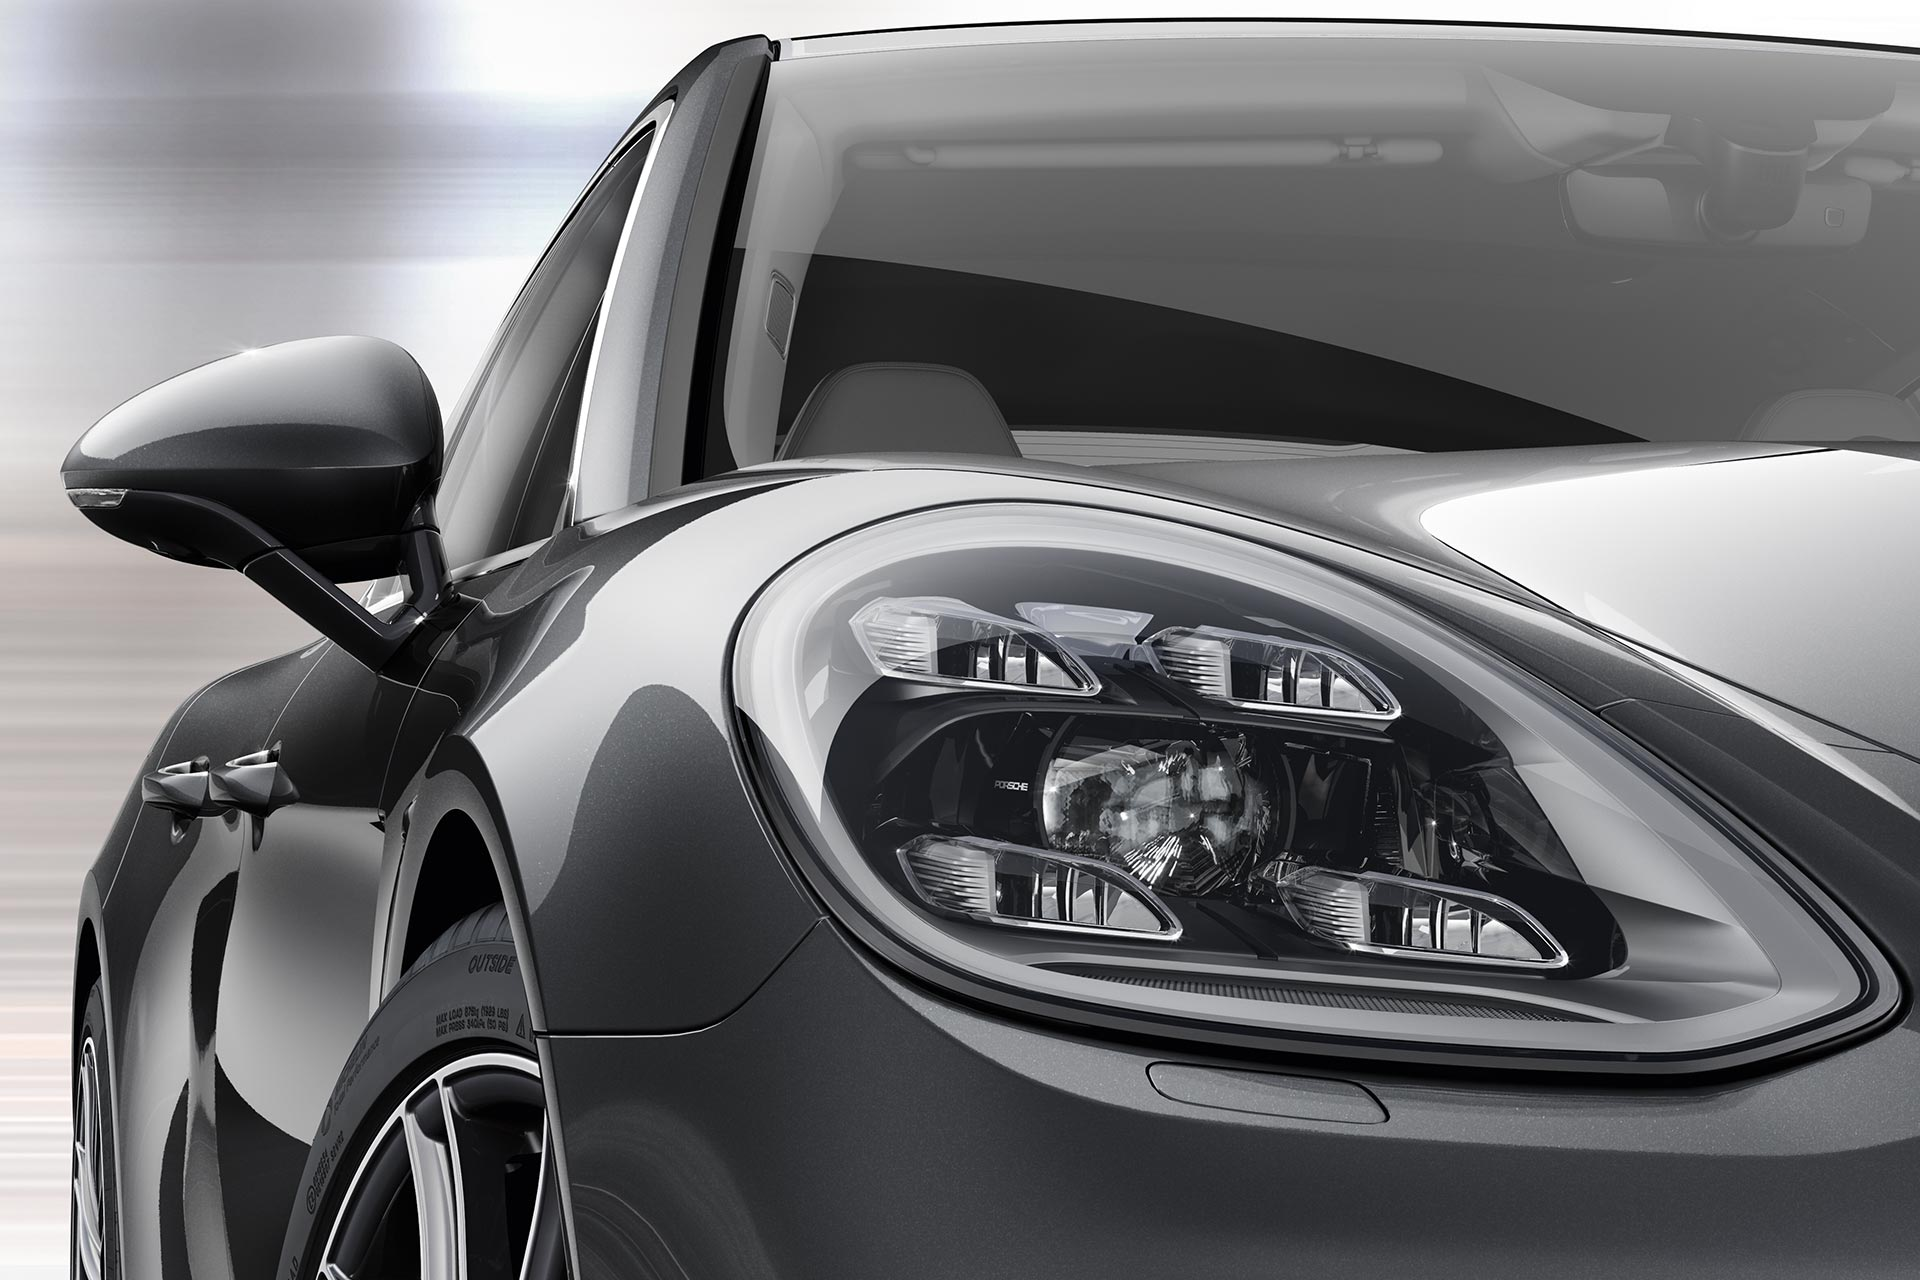 Porsche Panamera - 2016 - front light / optique avant